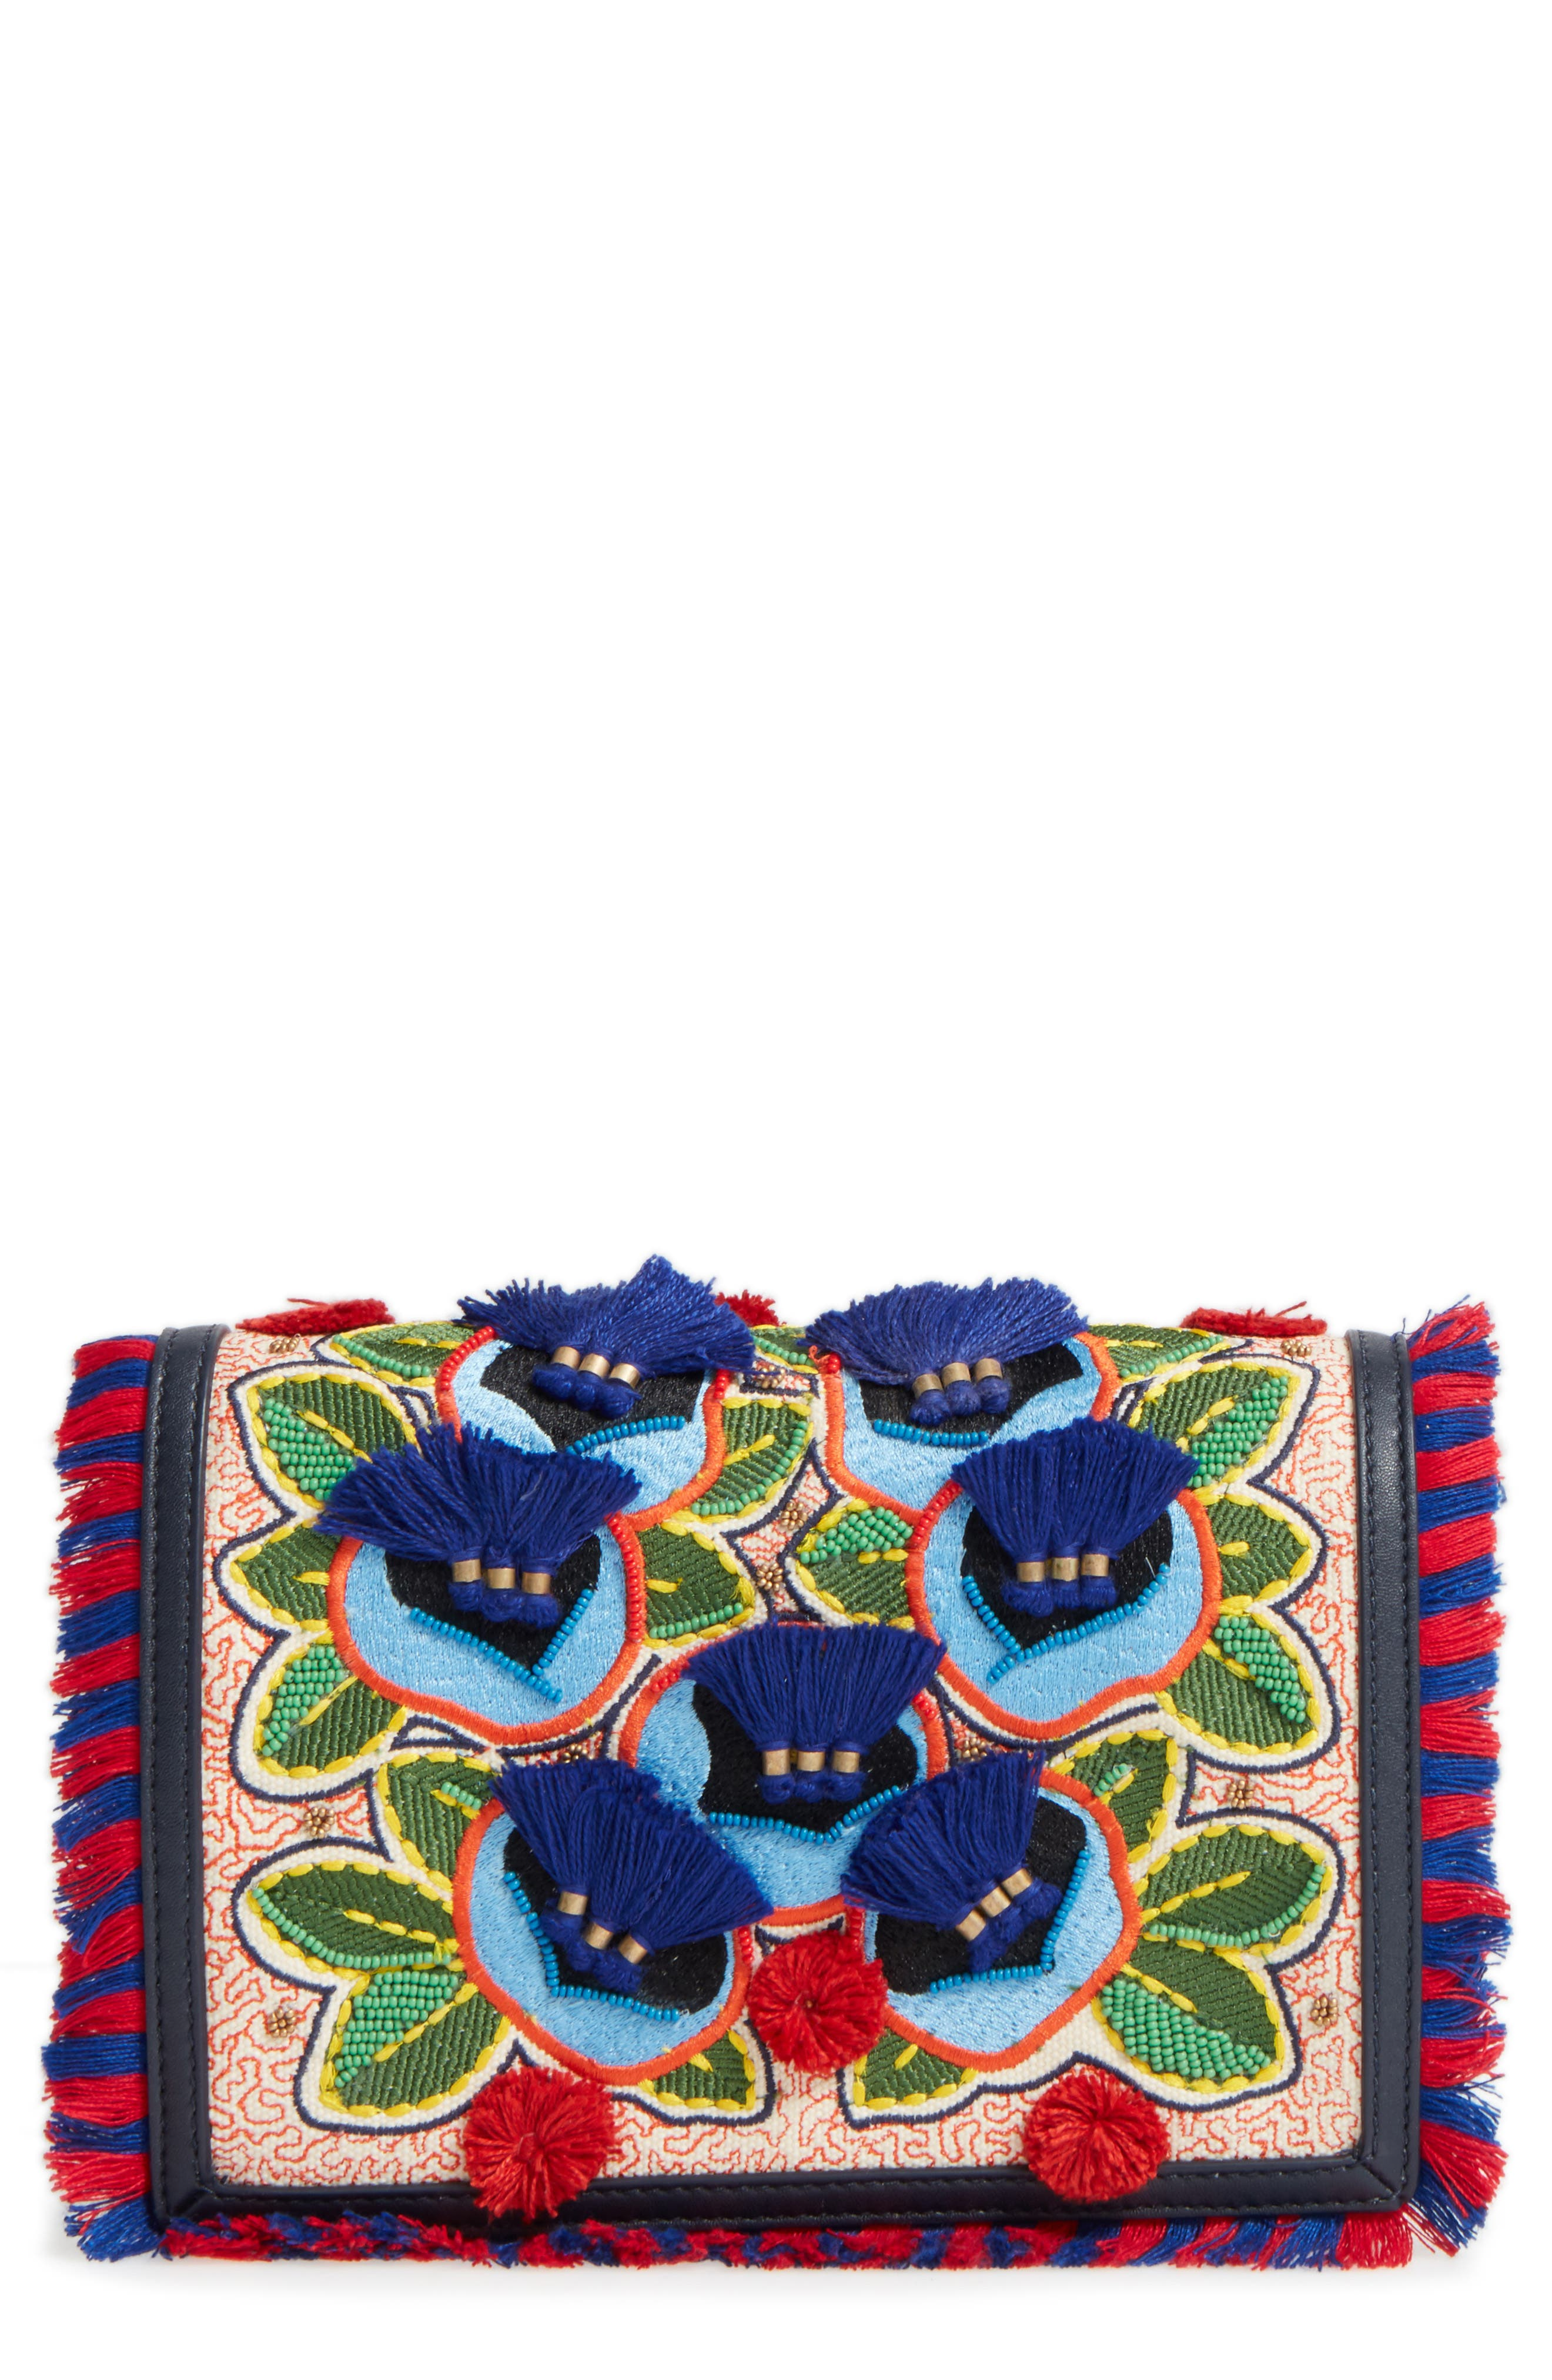 Embroidered Floral Crossbody Bag,                             Main thumbnail 1, color,                             400